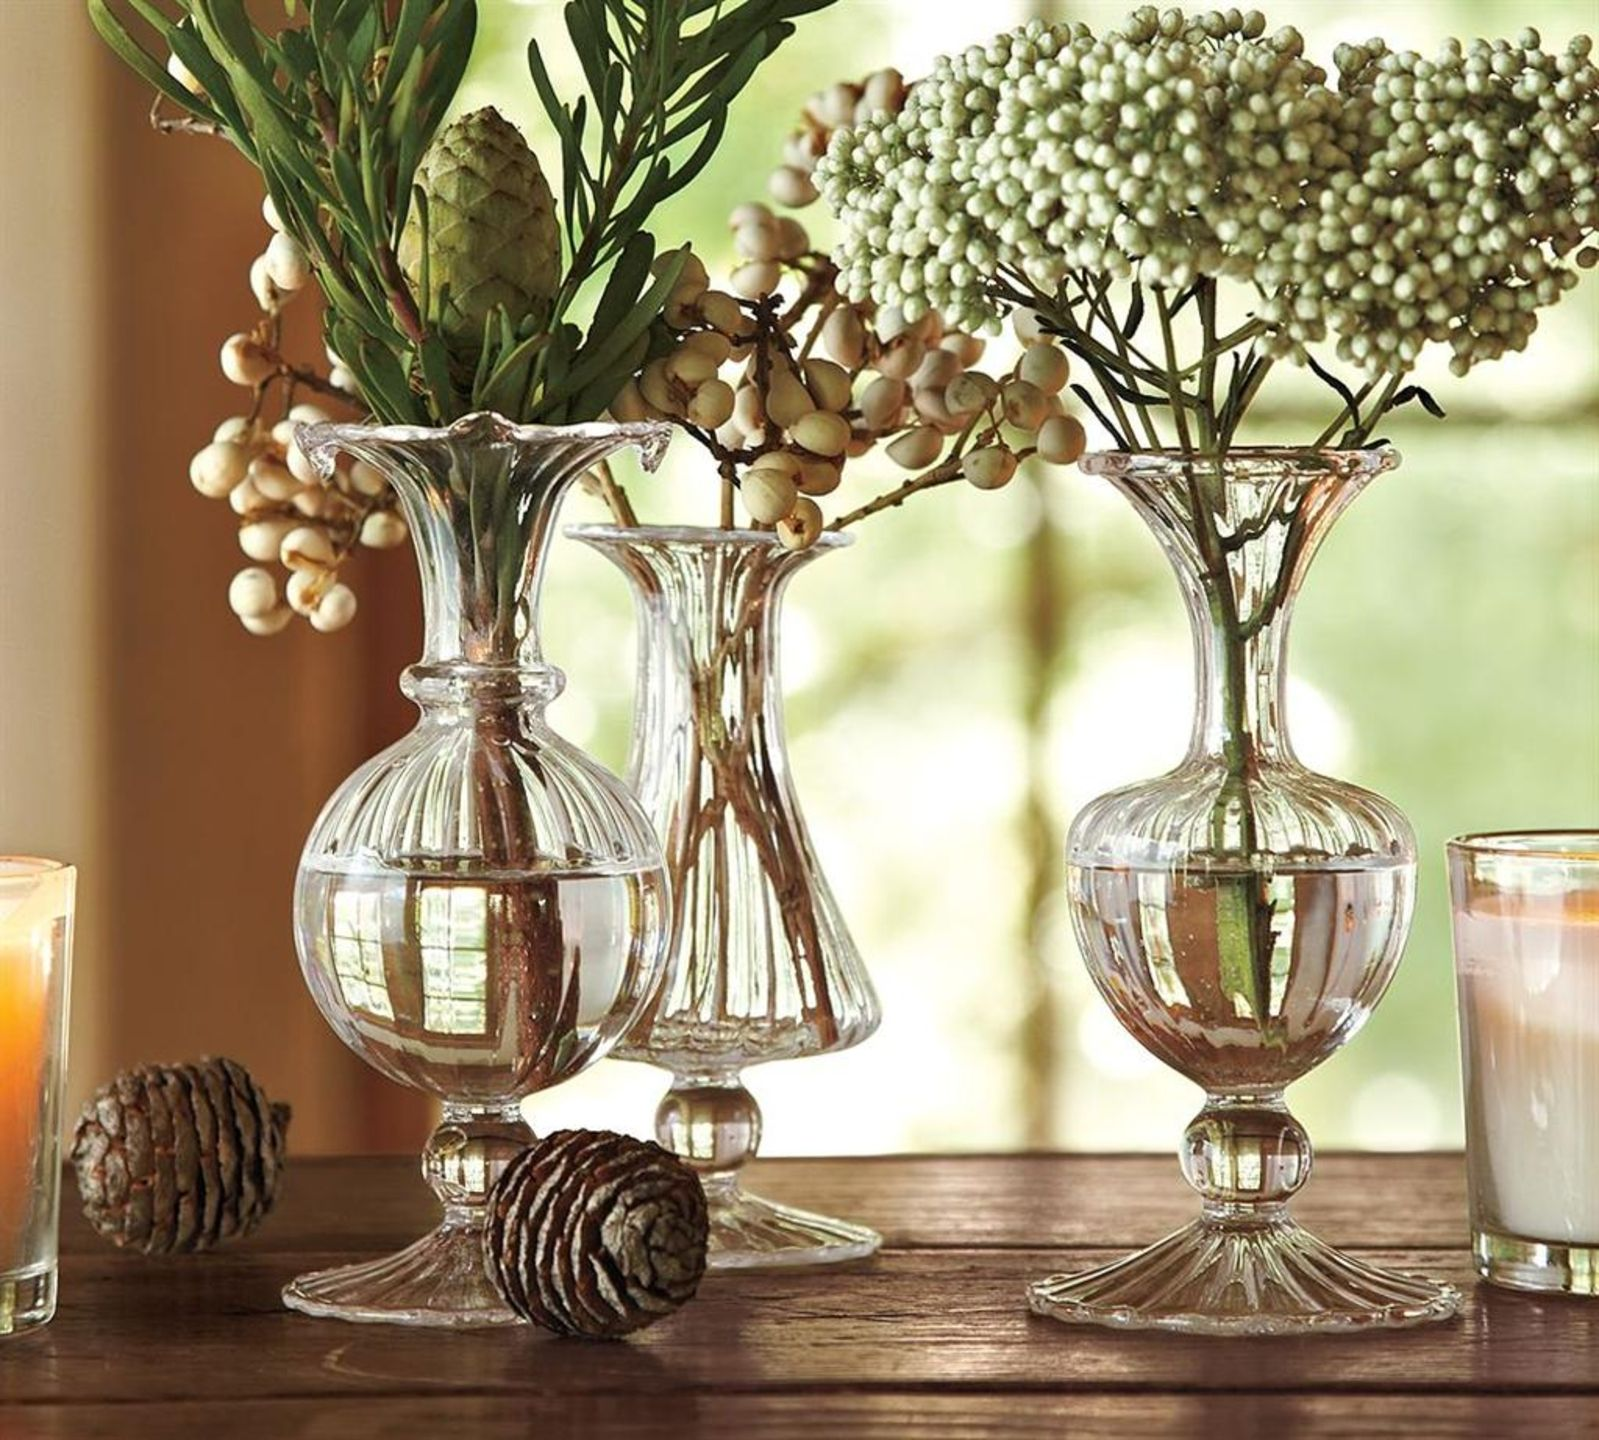 Glass Home Decor Glass Home Decor 3pcsset Wall Terrarium